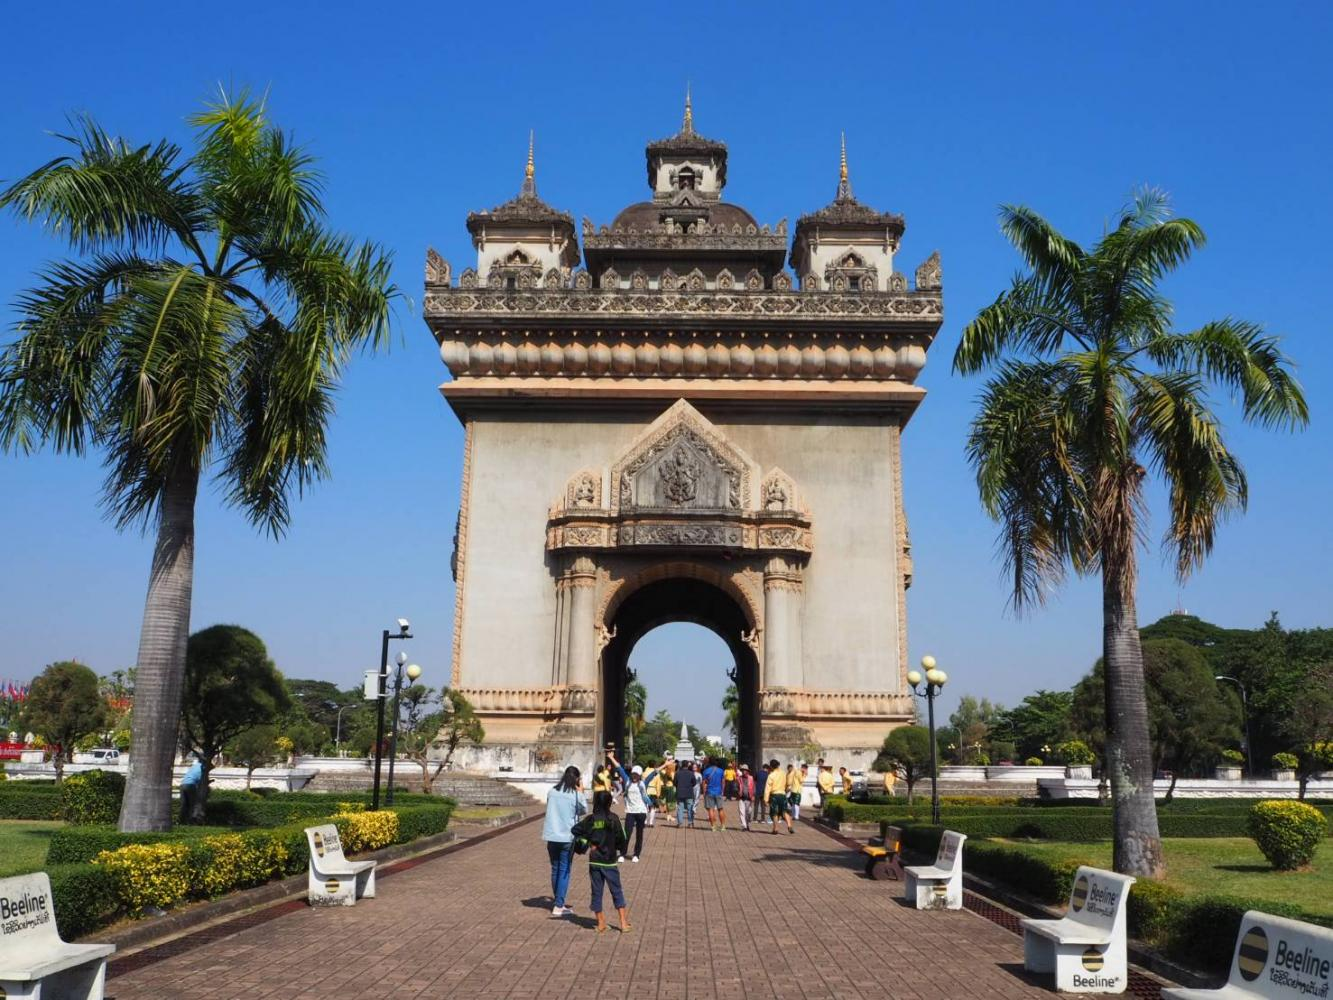 Visitors take photos at the Patuxai (Victory Gate) in Vientiane. Laos is a potential originating market for well-heeled tourists.